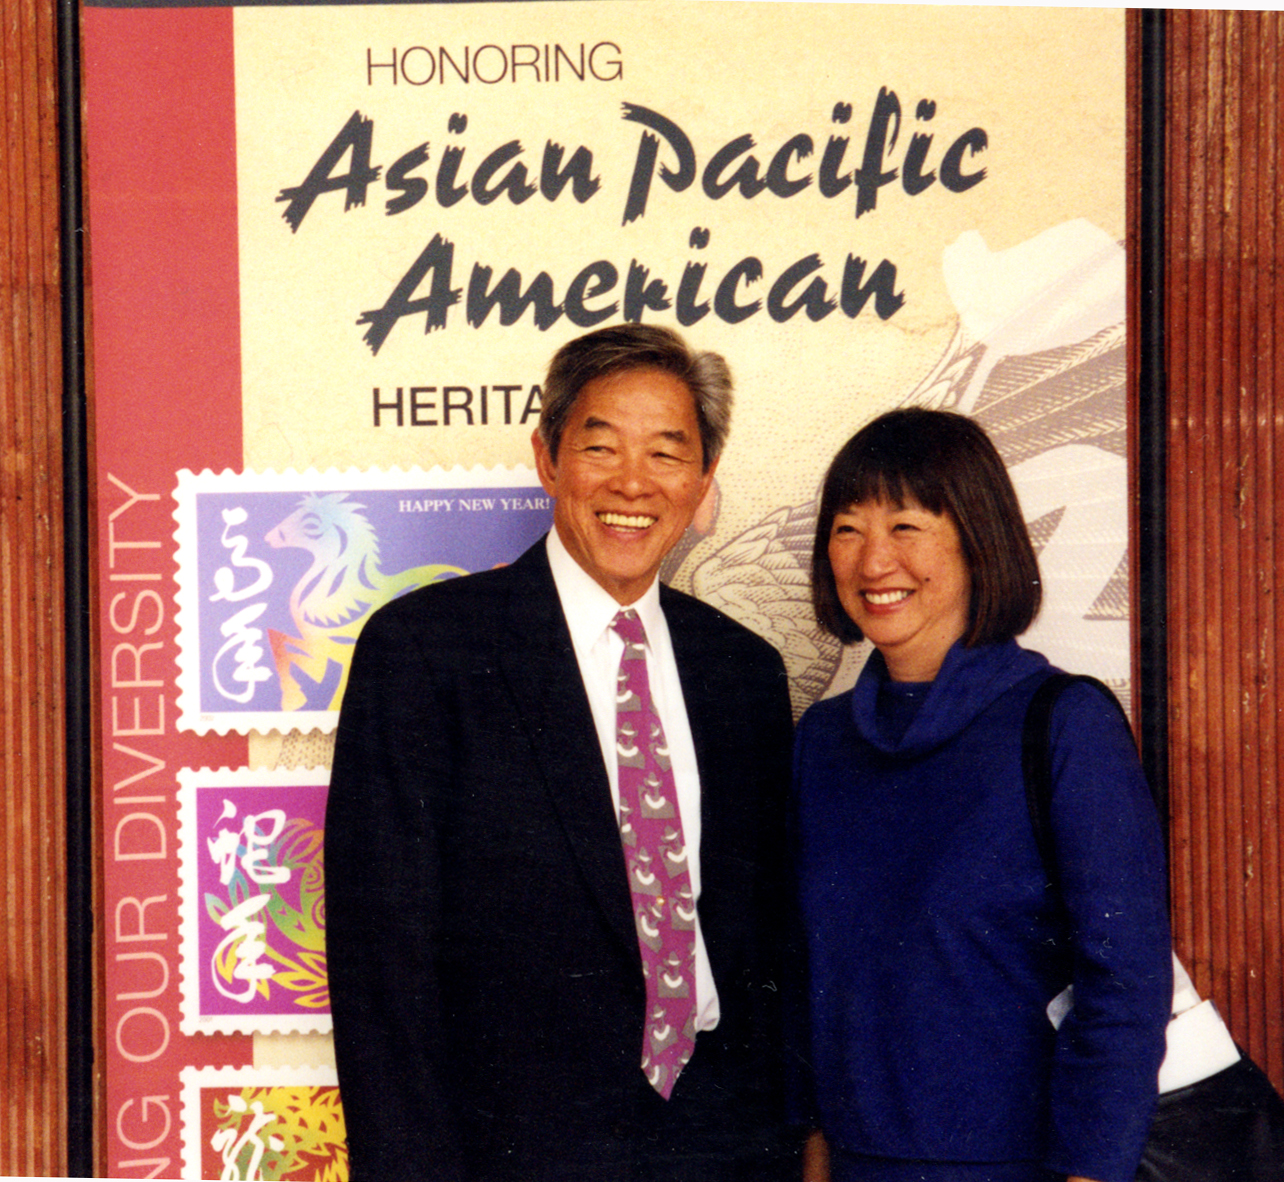 31 July 2019 Posted. Rooster Stamp Reception, San Francisco May 1993, Clarence Lee and his wife Elsa Lee; Courtesy of Elsa Lee, Museum of Chinese in America (MOCA) Collection. 鸡年邮票发行酒会,1993年5月旧金山,李健文和妻子Elsa Lee;Elsa Lee捐赠,美国华人博物馆(MOCA)馆藏